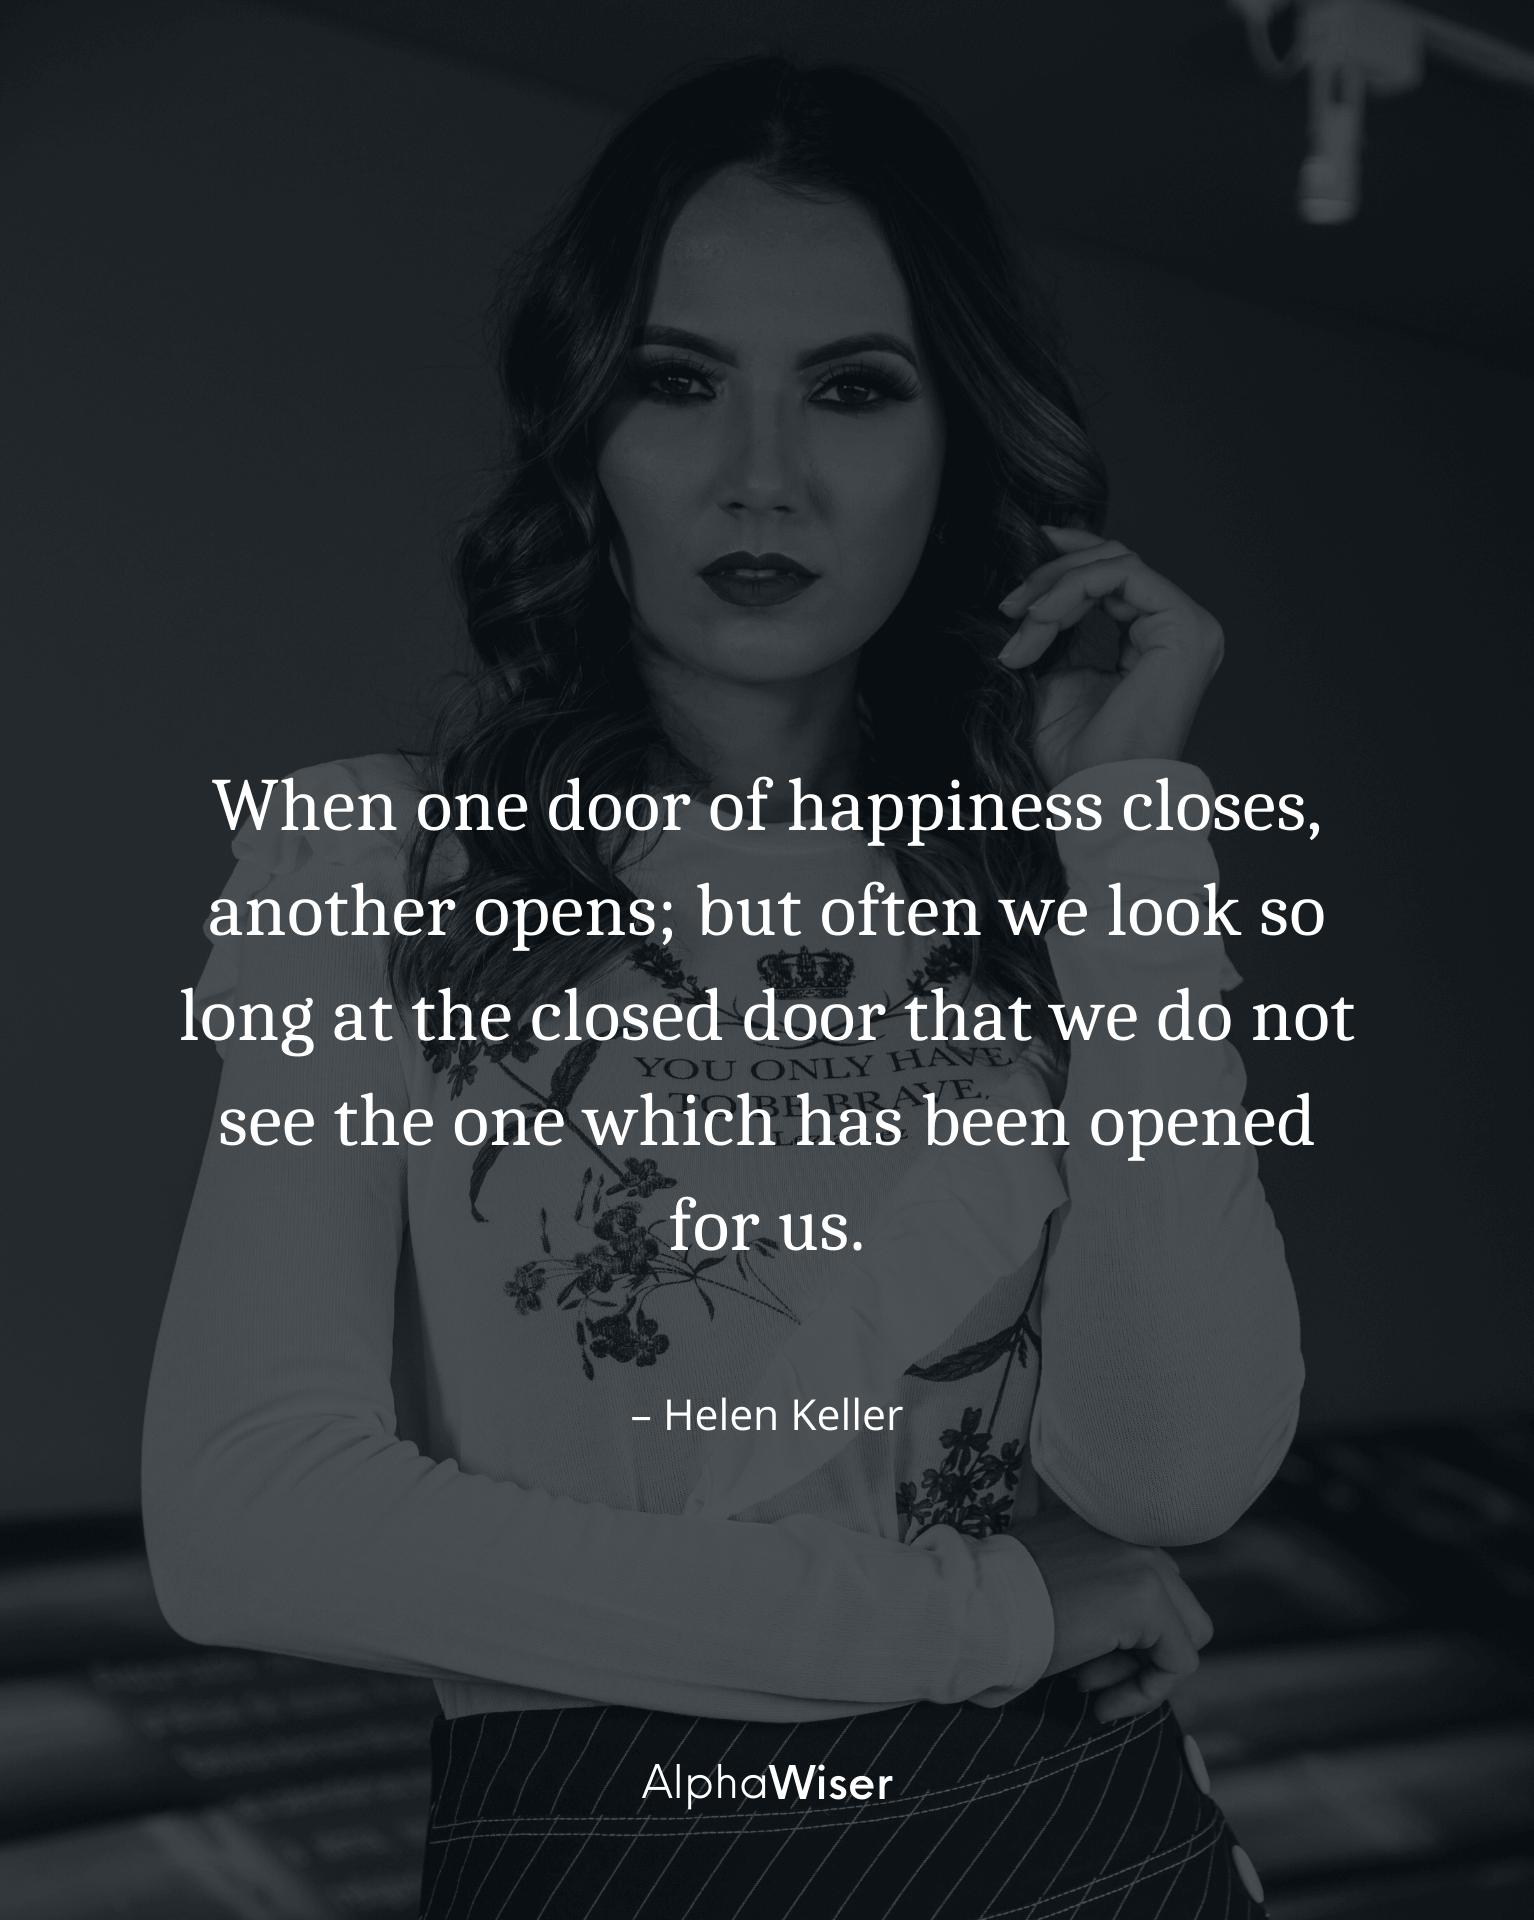 When one door of happiness closes, another opens; but often we look so long at the closed door that we do not see the one which has been opened for us.